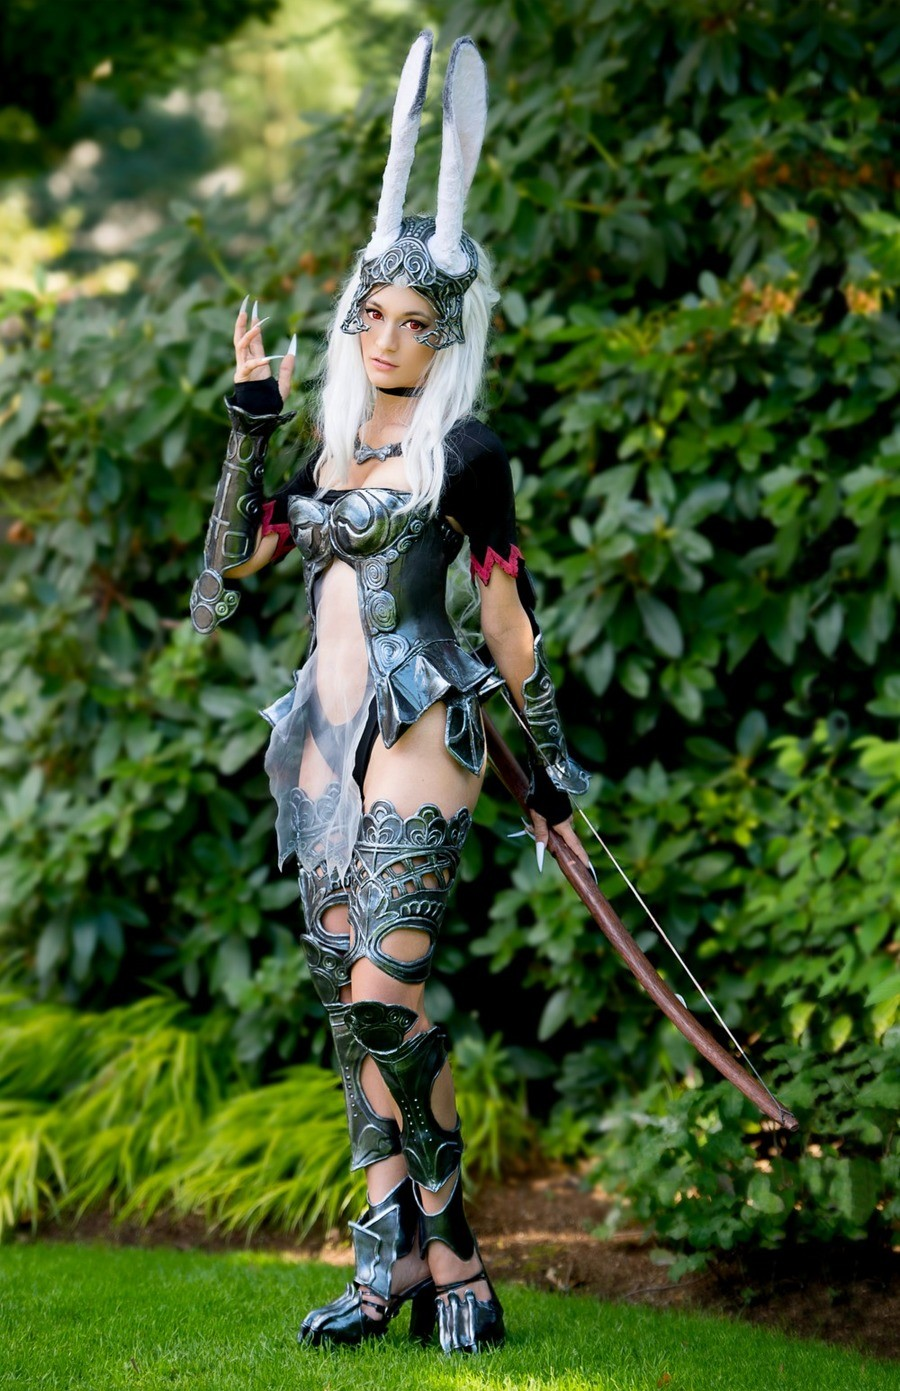 Fran Cosplay. join list: VidyaGameStuff (85 subs)Mention History.. Why do I get the feeling this woman is in her 50's.